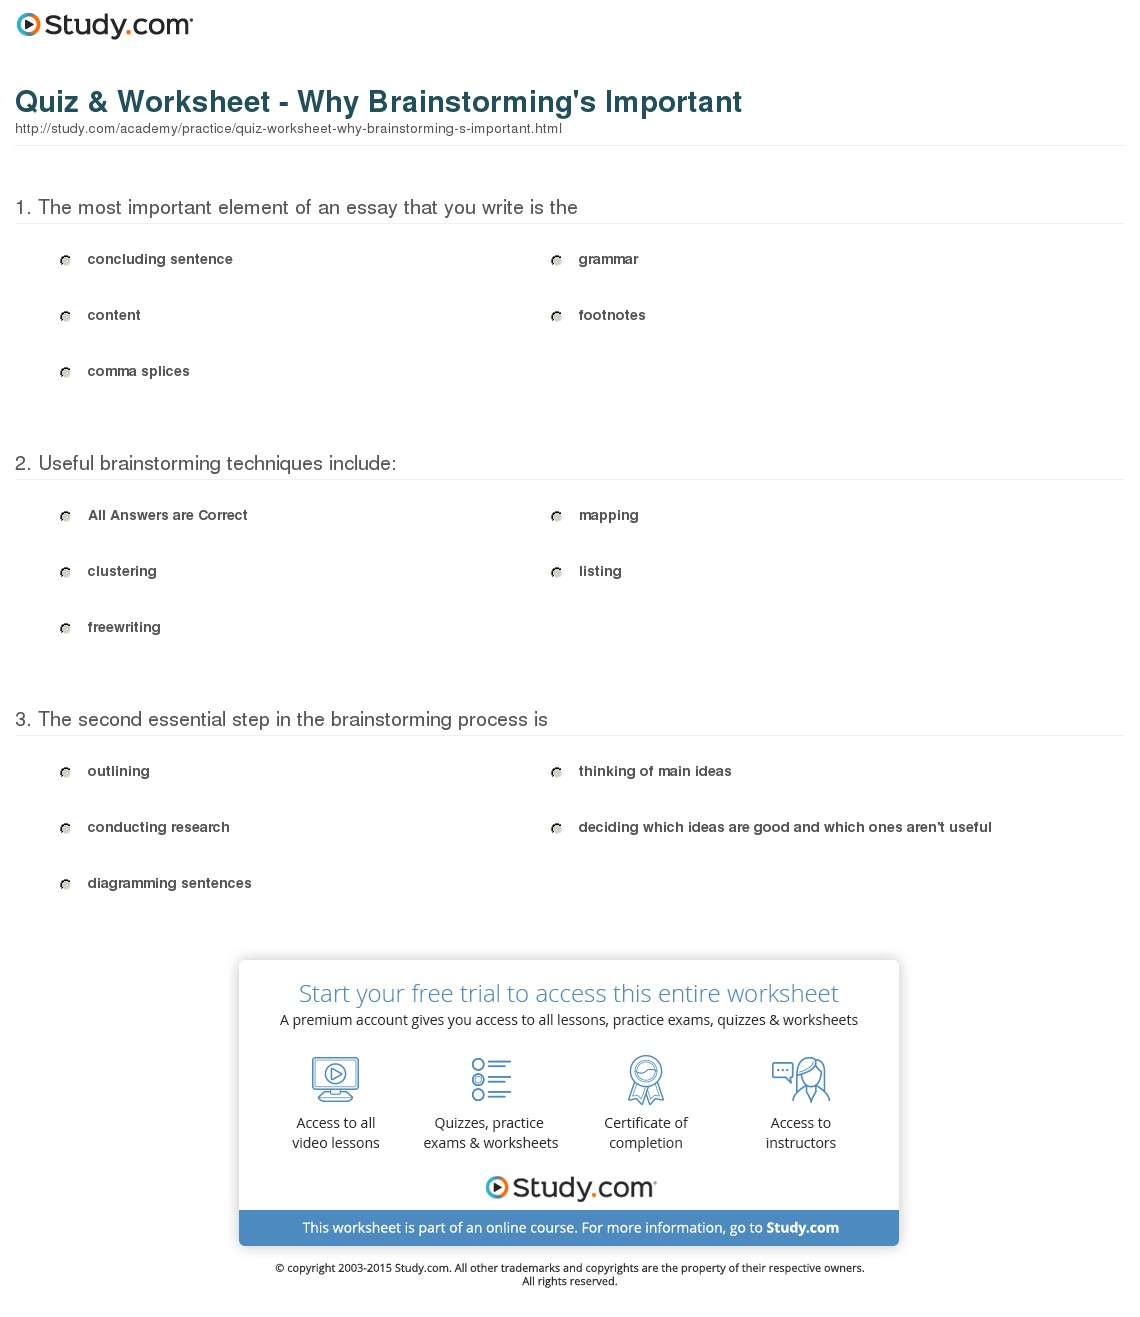 011 Quiz Worksheet Why Brainstorming S Important Essay Outstanding Writing Techniques Topics College Full